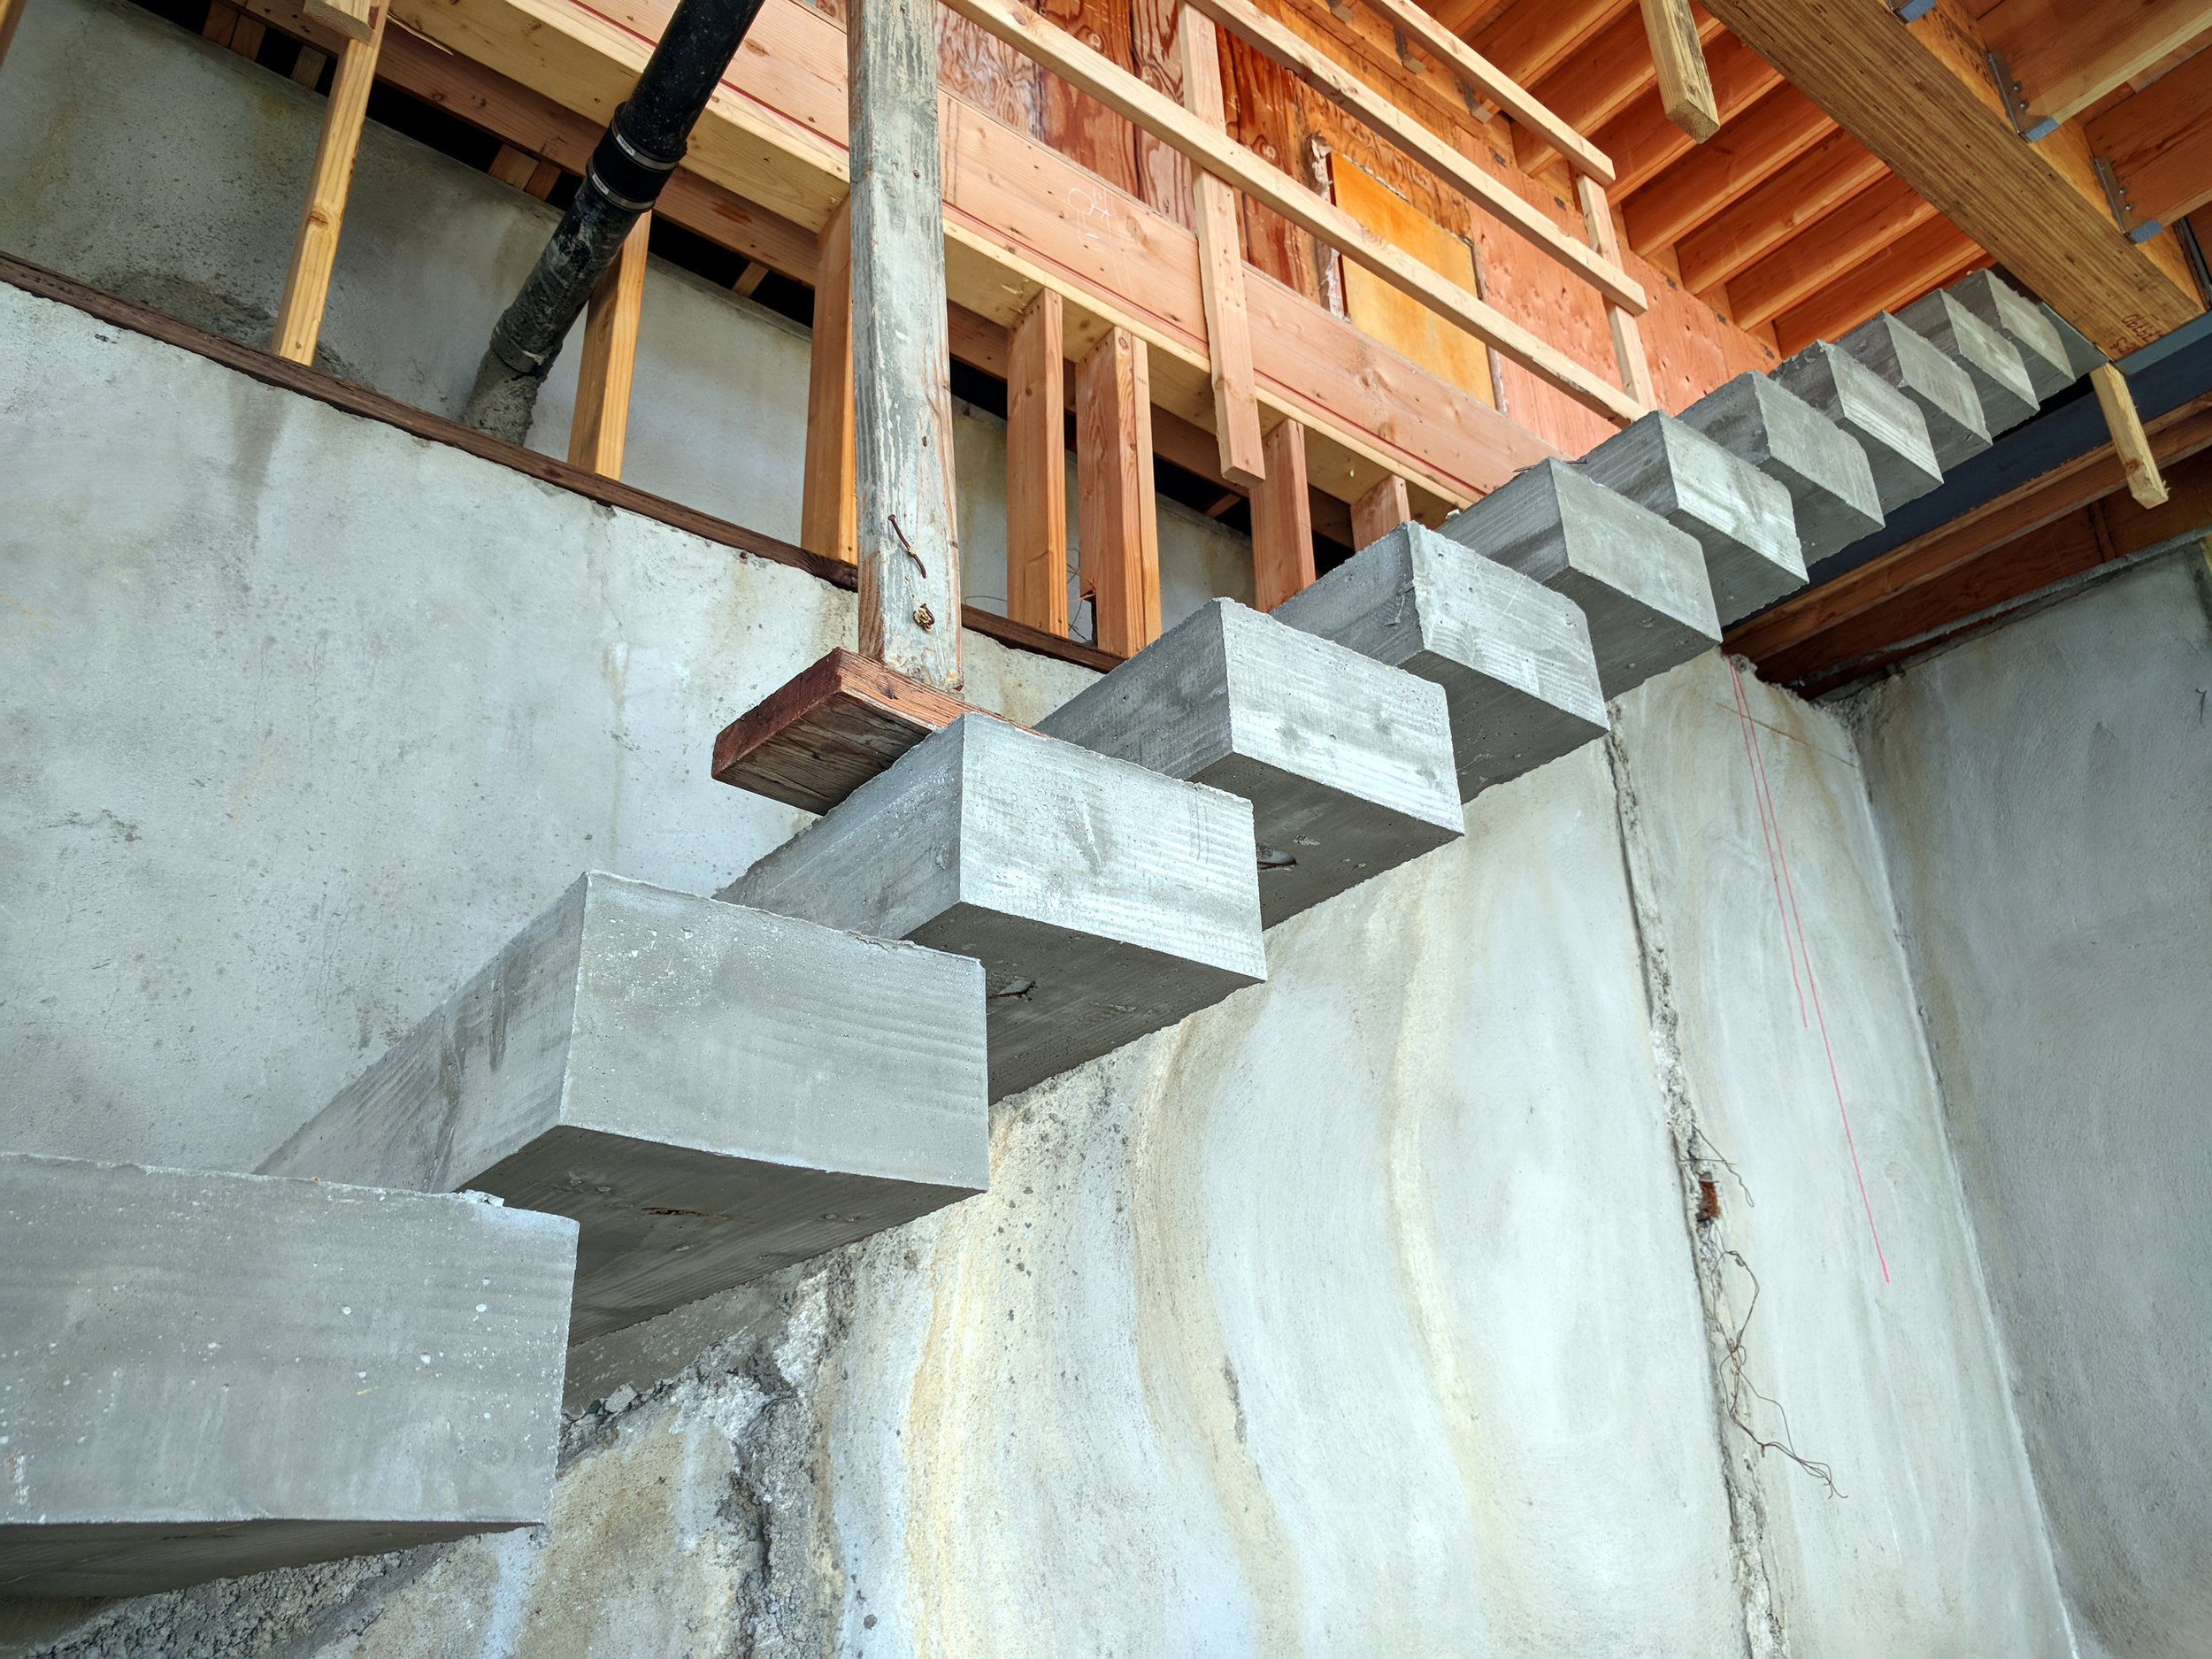 Cantilevered stairs-Between Lower Level and Main Level.